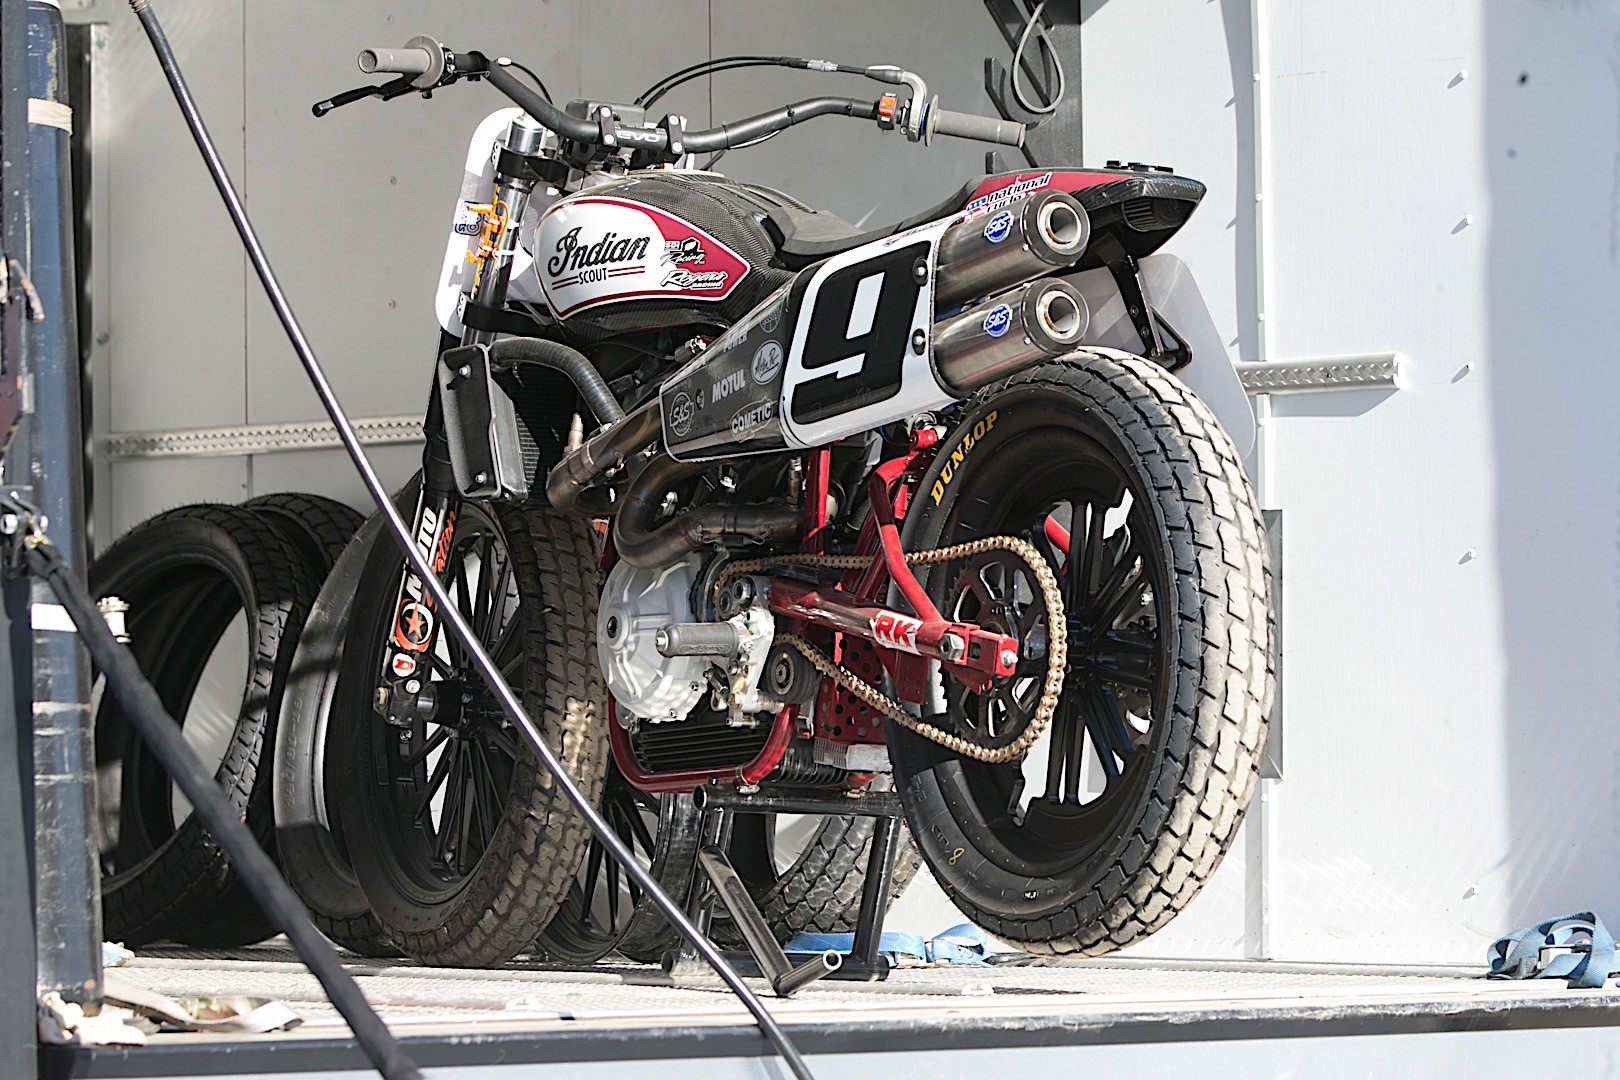 Indian Motorcycle Racing Scores Fifth Consecutive Win This ...